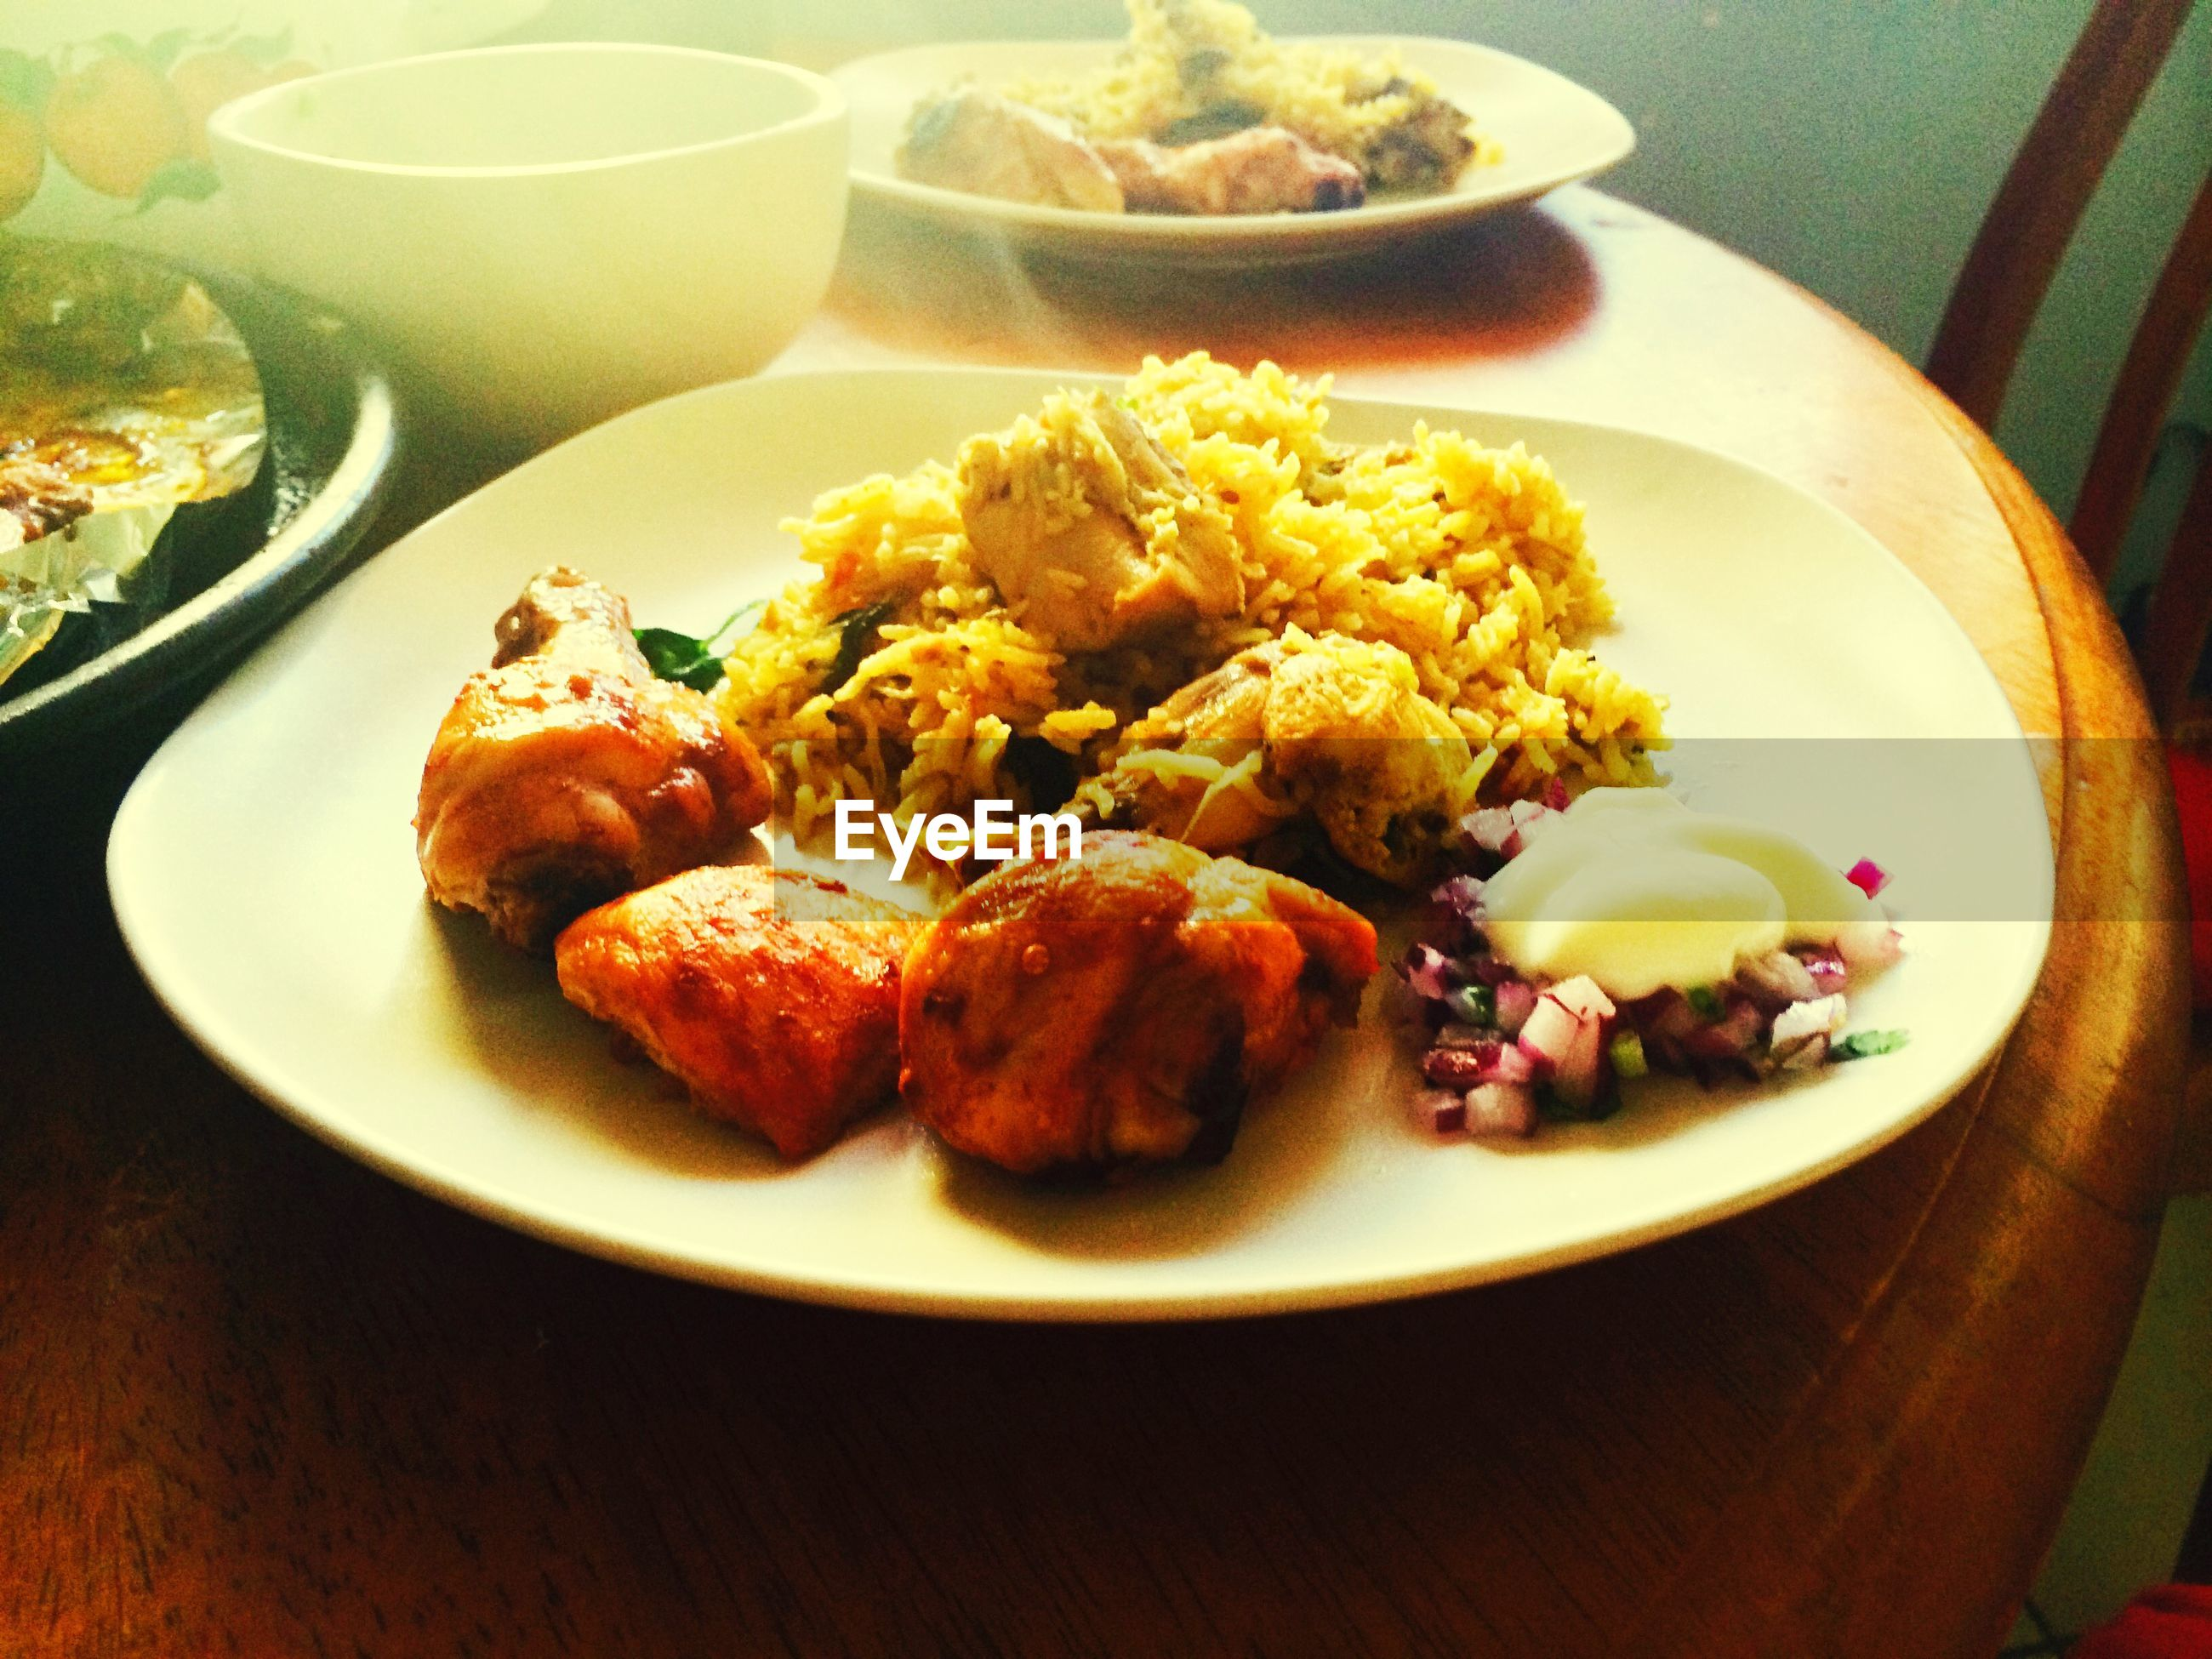 CLOSE-UP OF SERVED FOOD IN PLATE